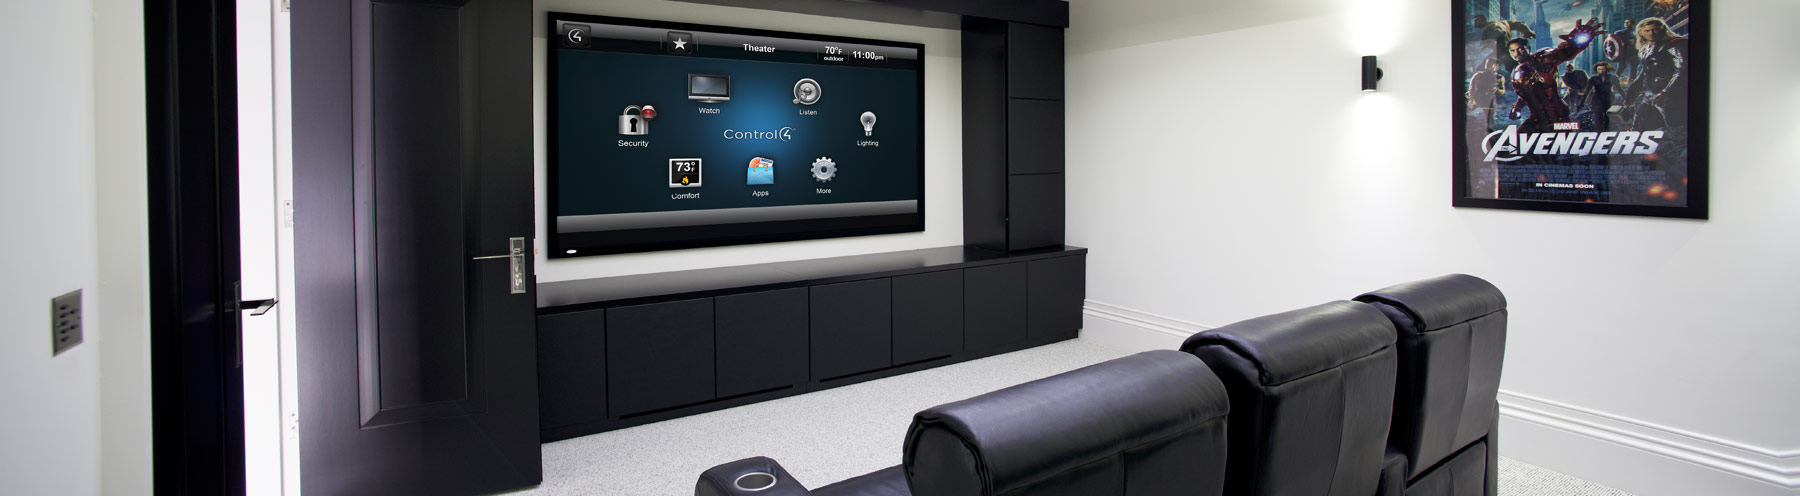 Header - Home Page Slide - Extreme AVS Home Theater- Bridgehampton